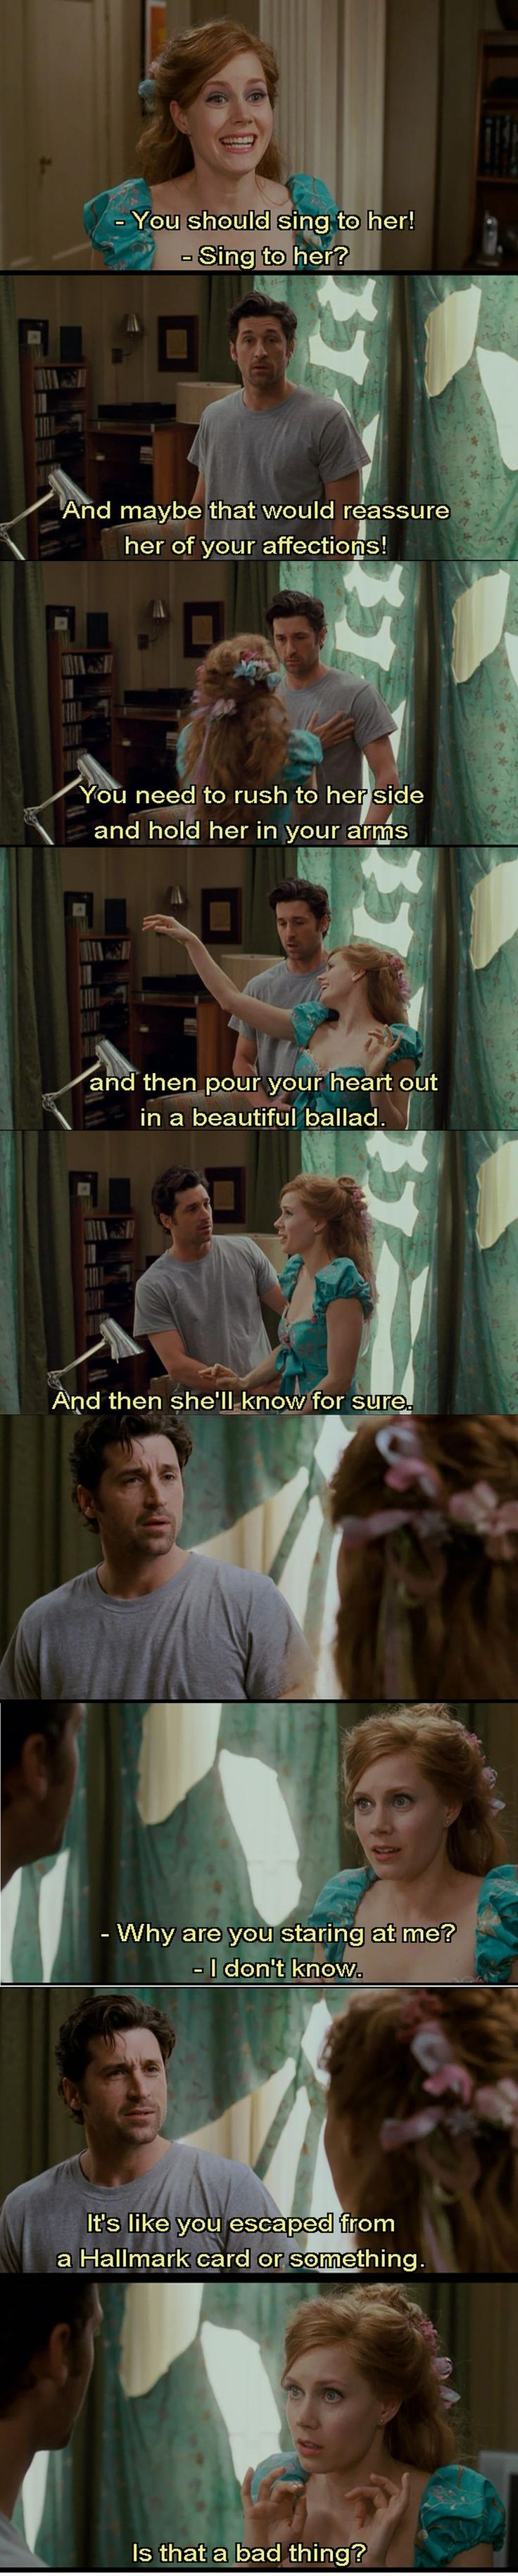 """""""It's like you escaped from a Hallmark card or something"""" """"Is that a bad thing?"""" #Enchanted Movie Quotes <3"""